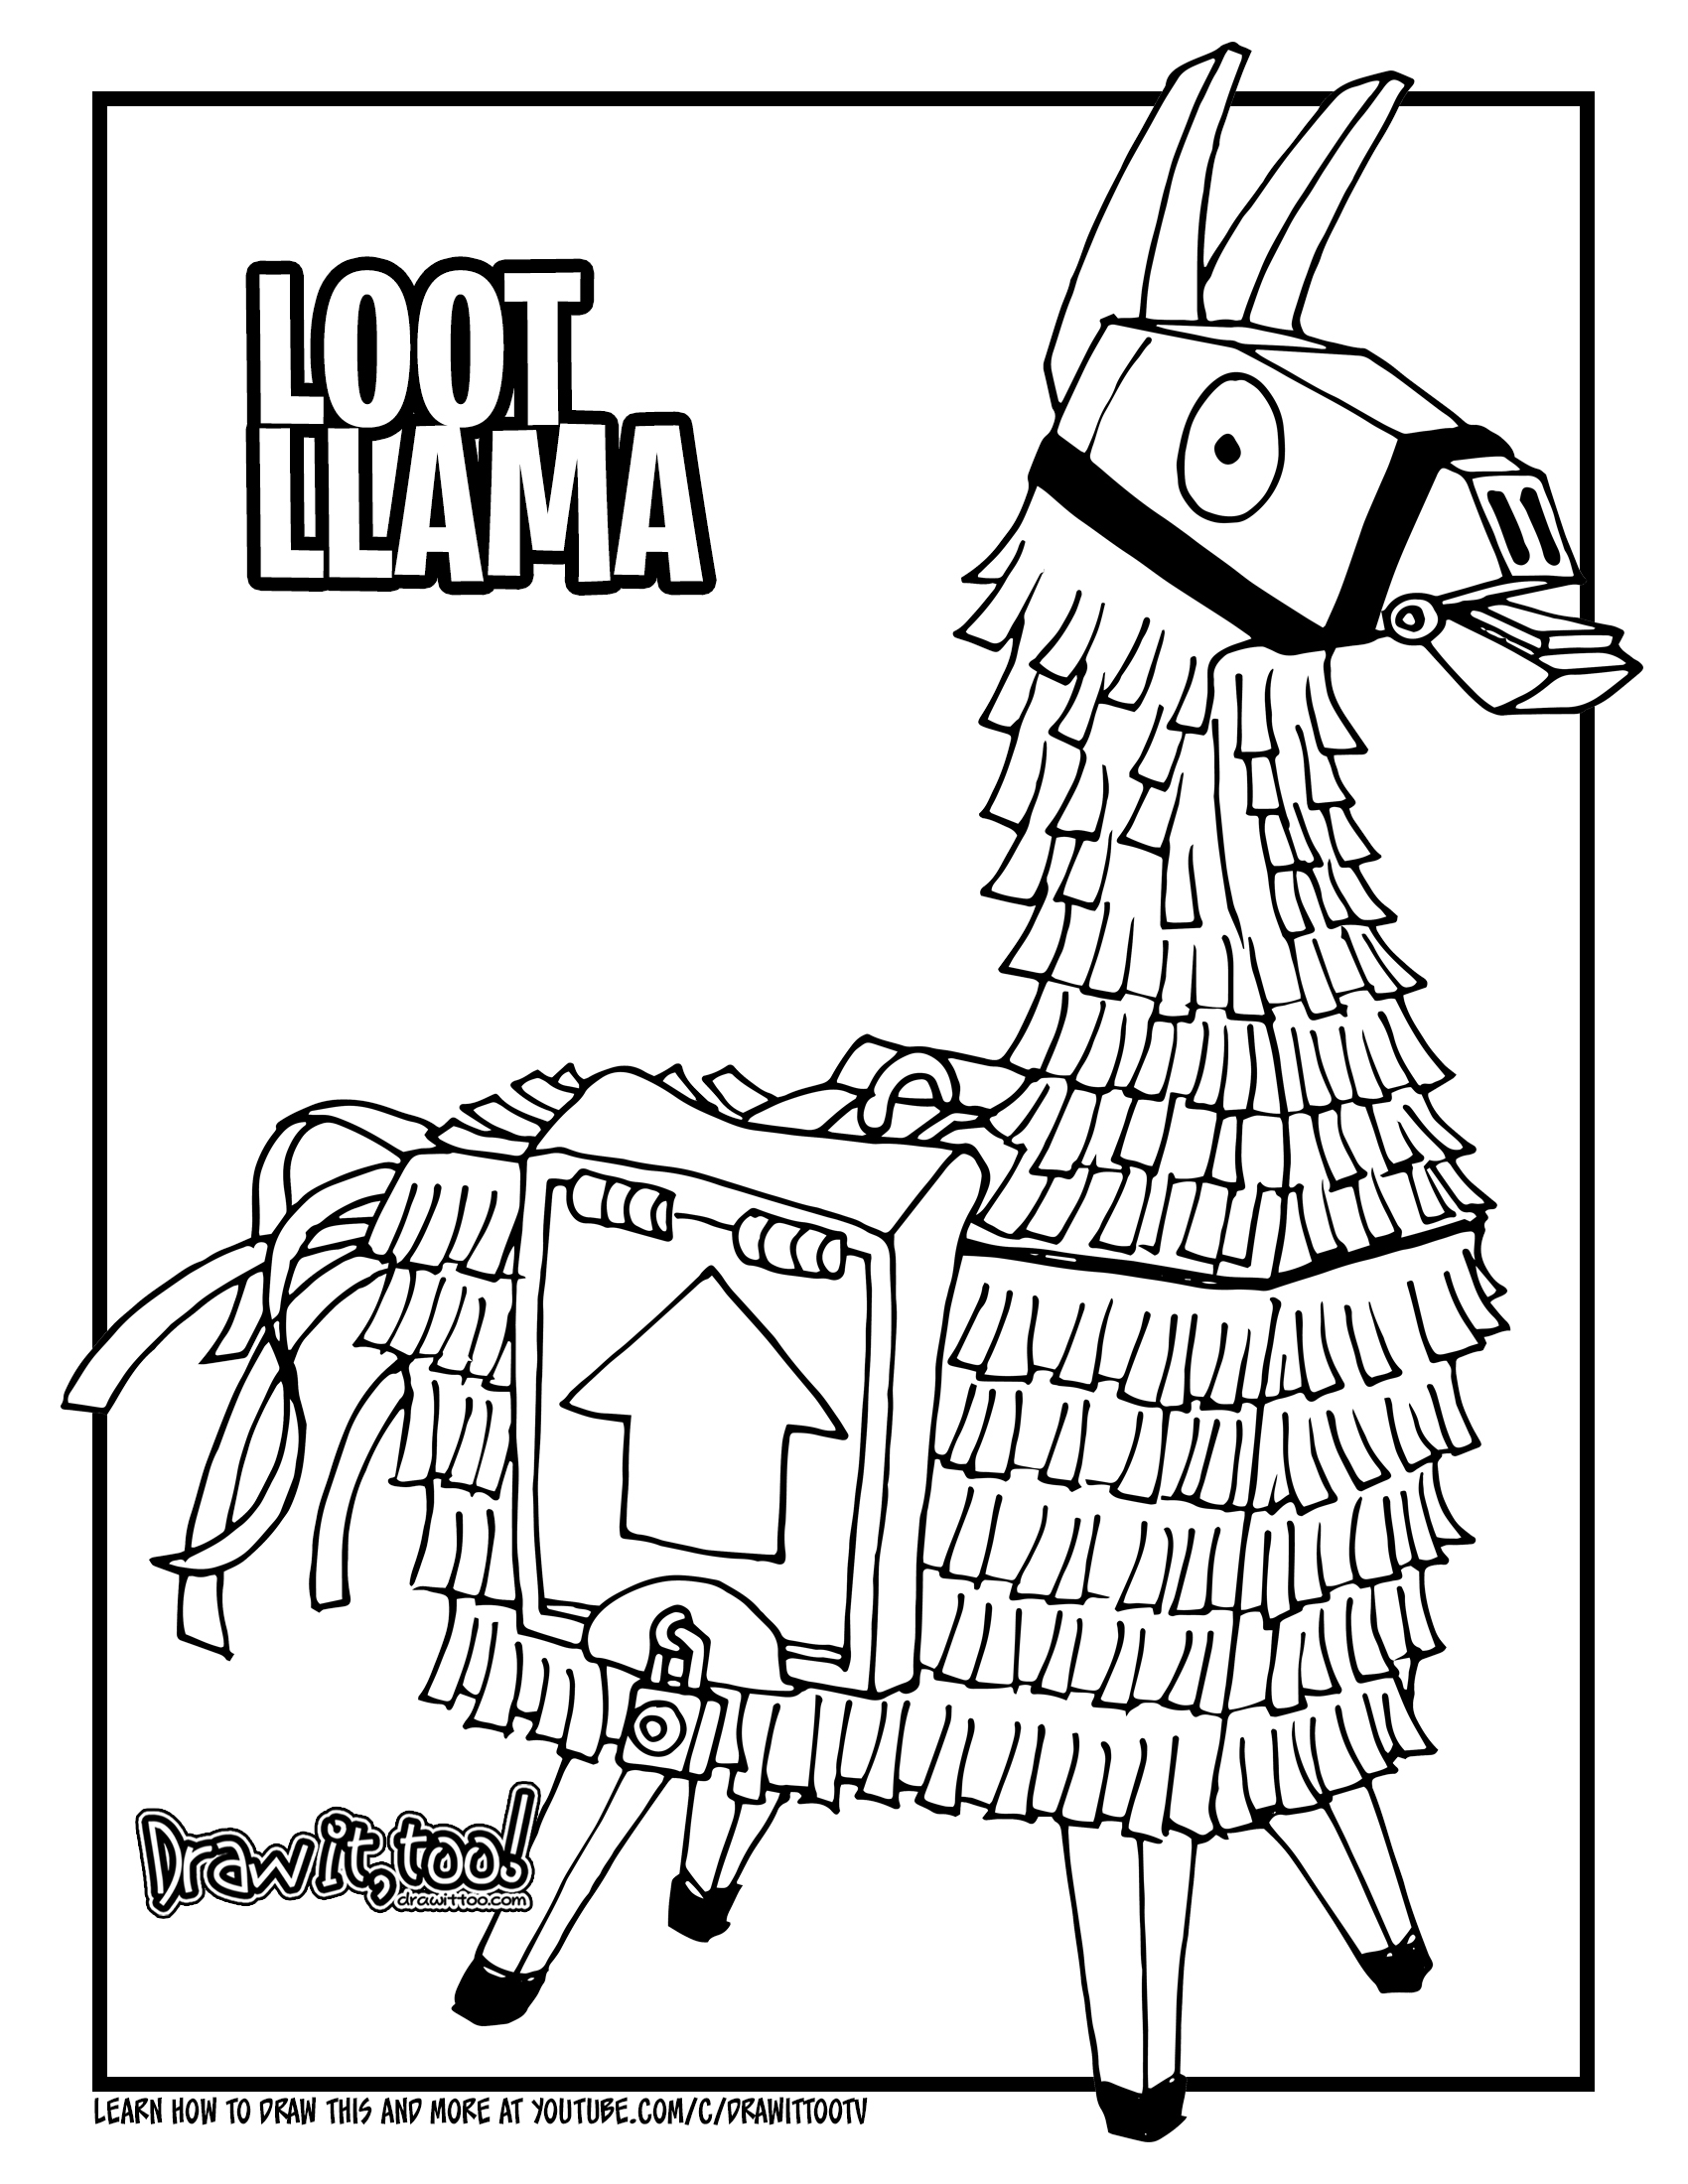 How To Draw The Loot Llama Fortnite Battle Royale